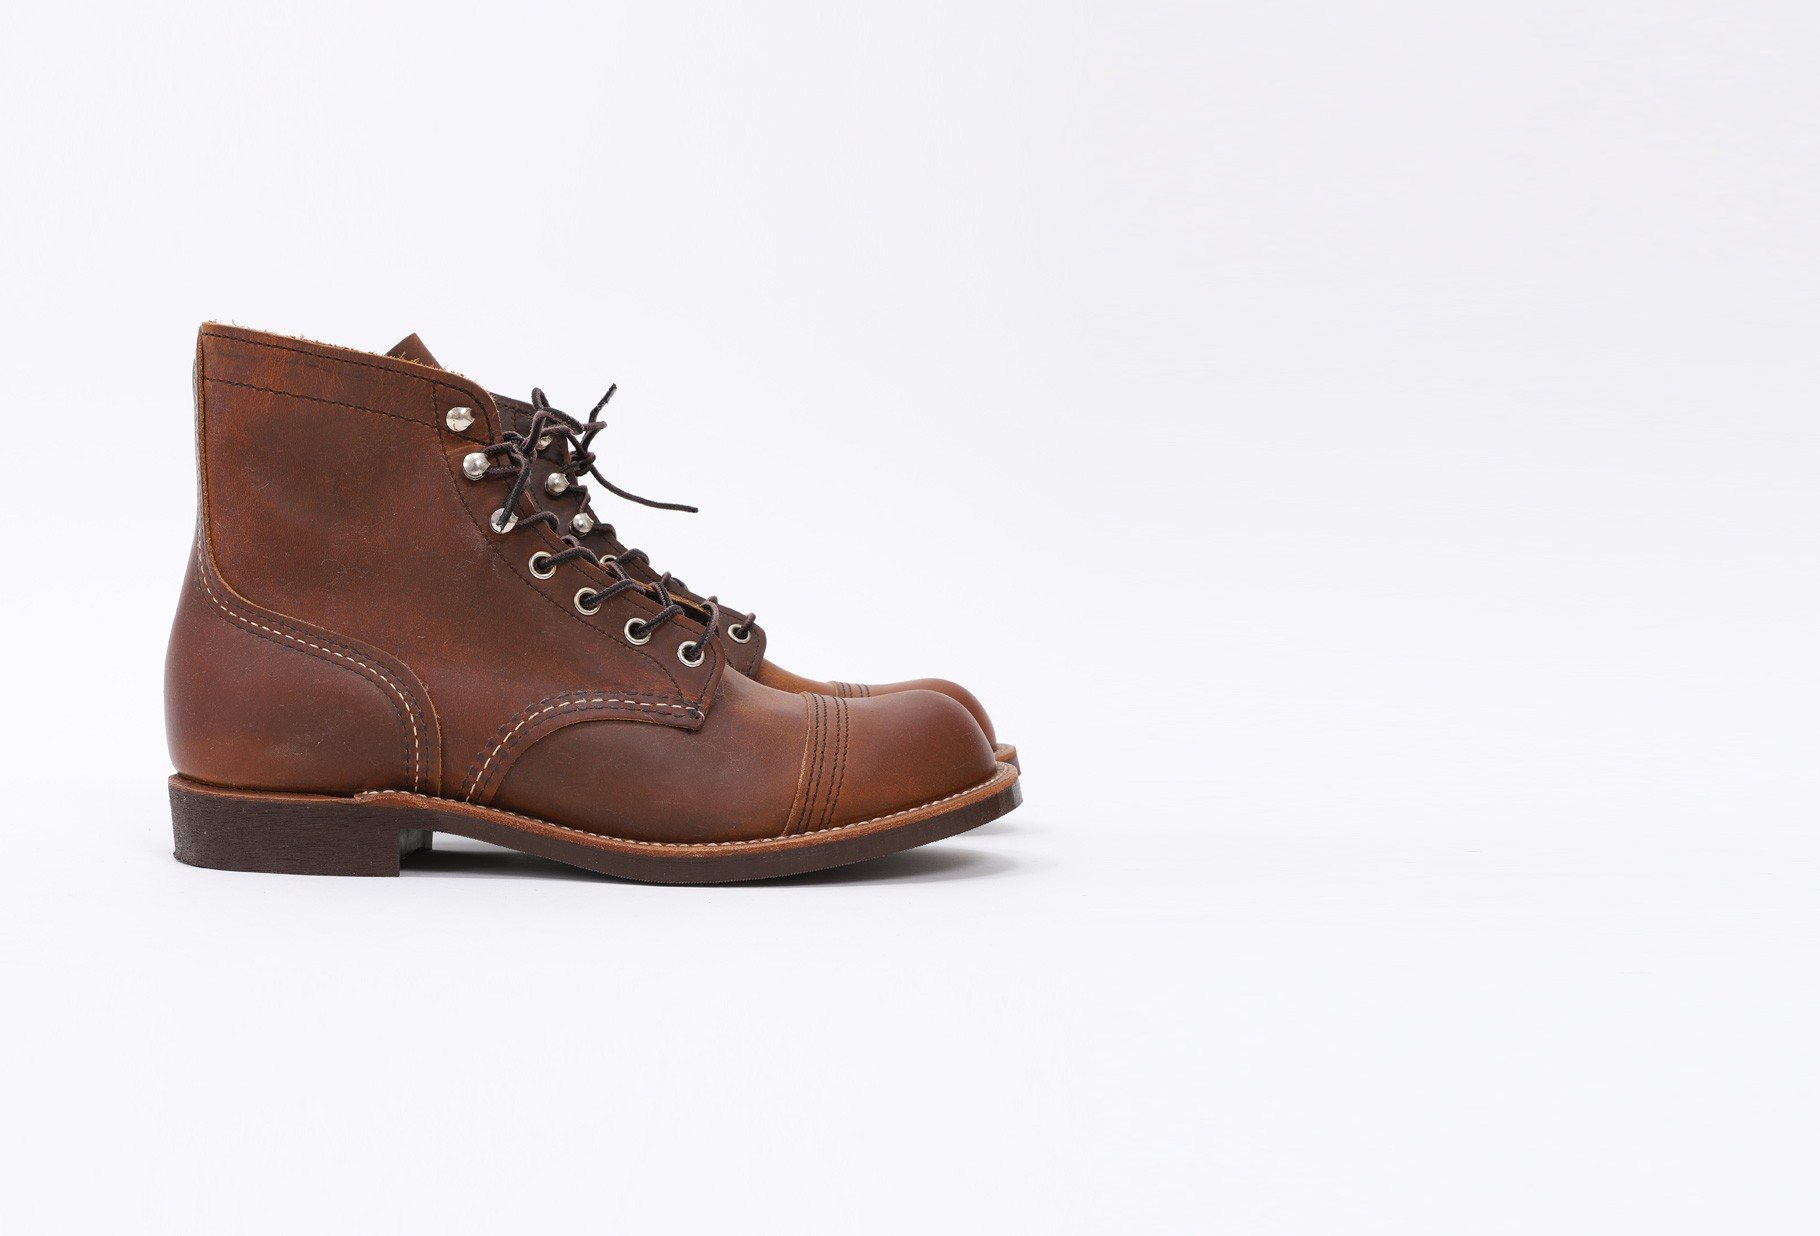 RED WING / Iron ranger style n.8085 Copper